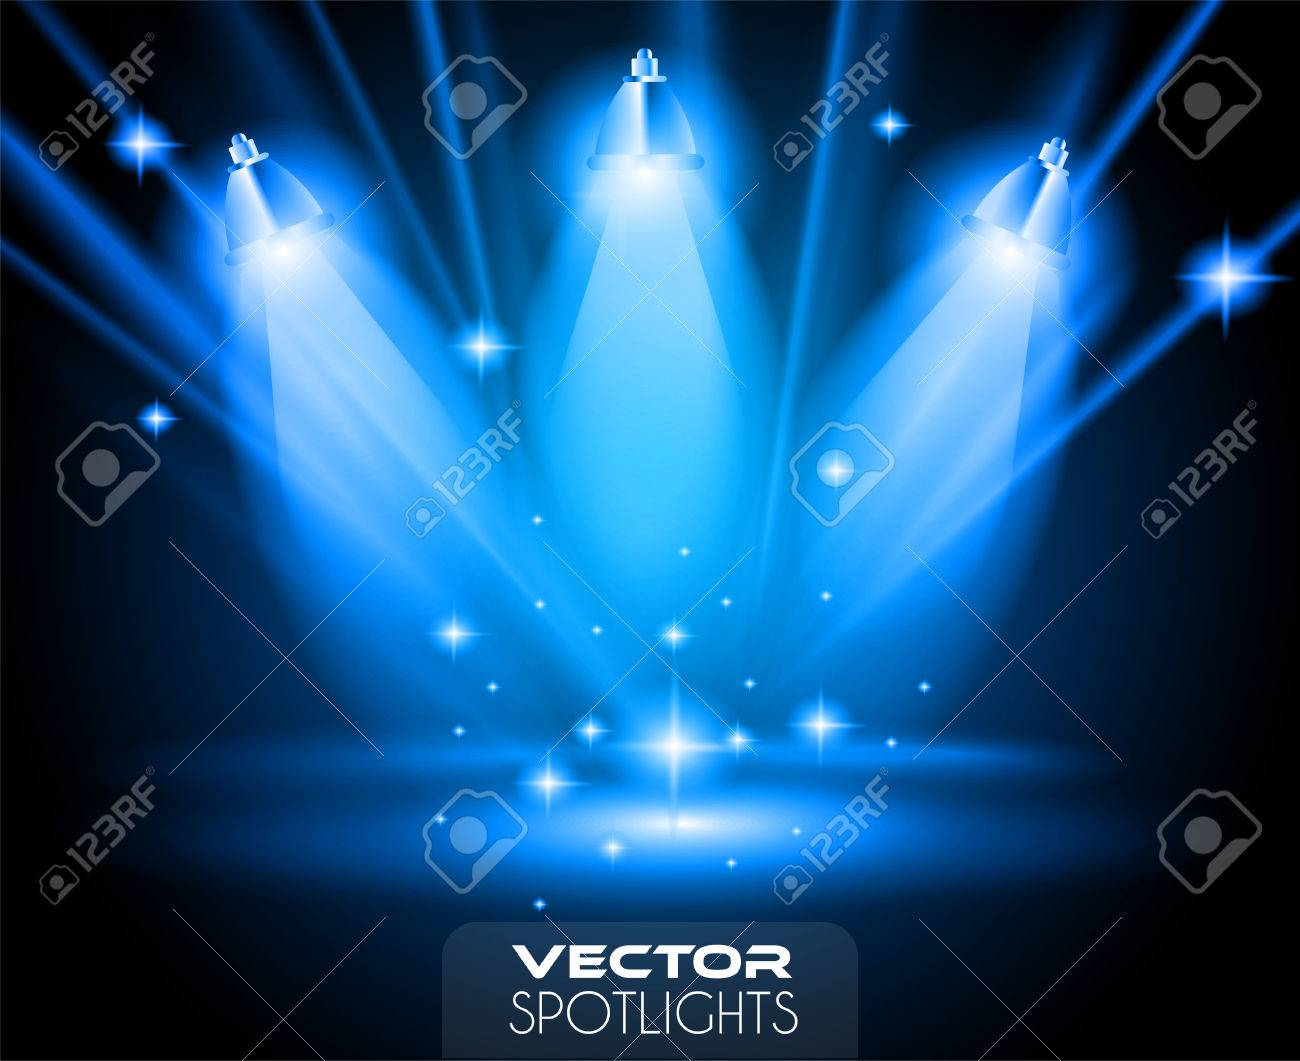 Vector Spotlights scene with different source of lights pointing to the floor or shelf. Ideal for featuring products. Lights are transparent so ready to be placed on every surface. - 54920633